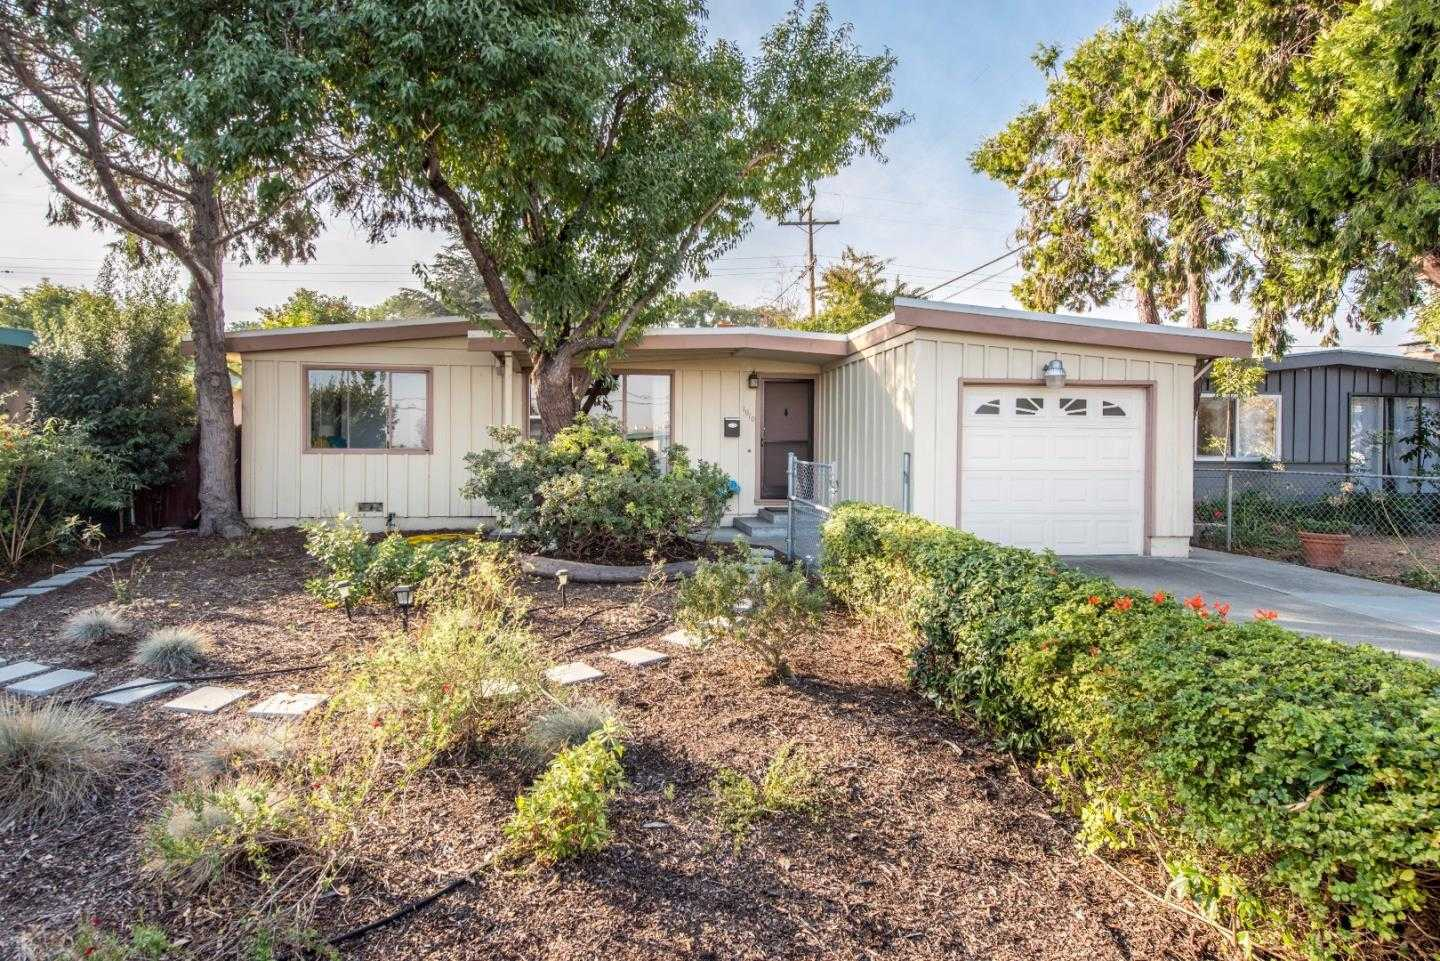 $998,000 - 3Br/2Ba -  for Sale in Sunnyvale